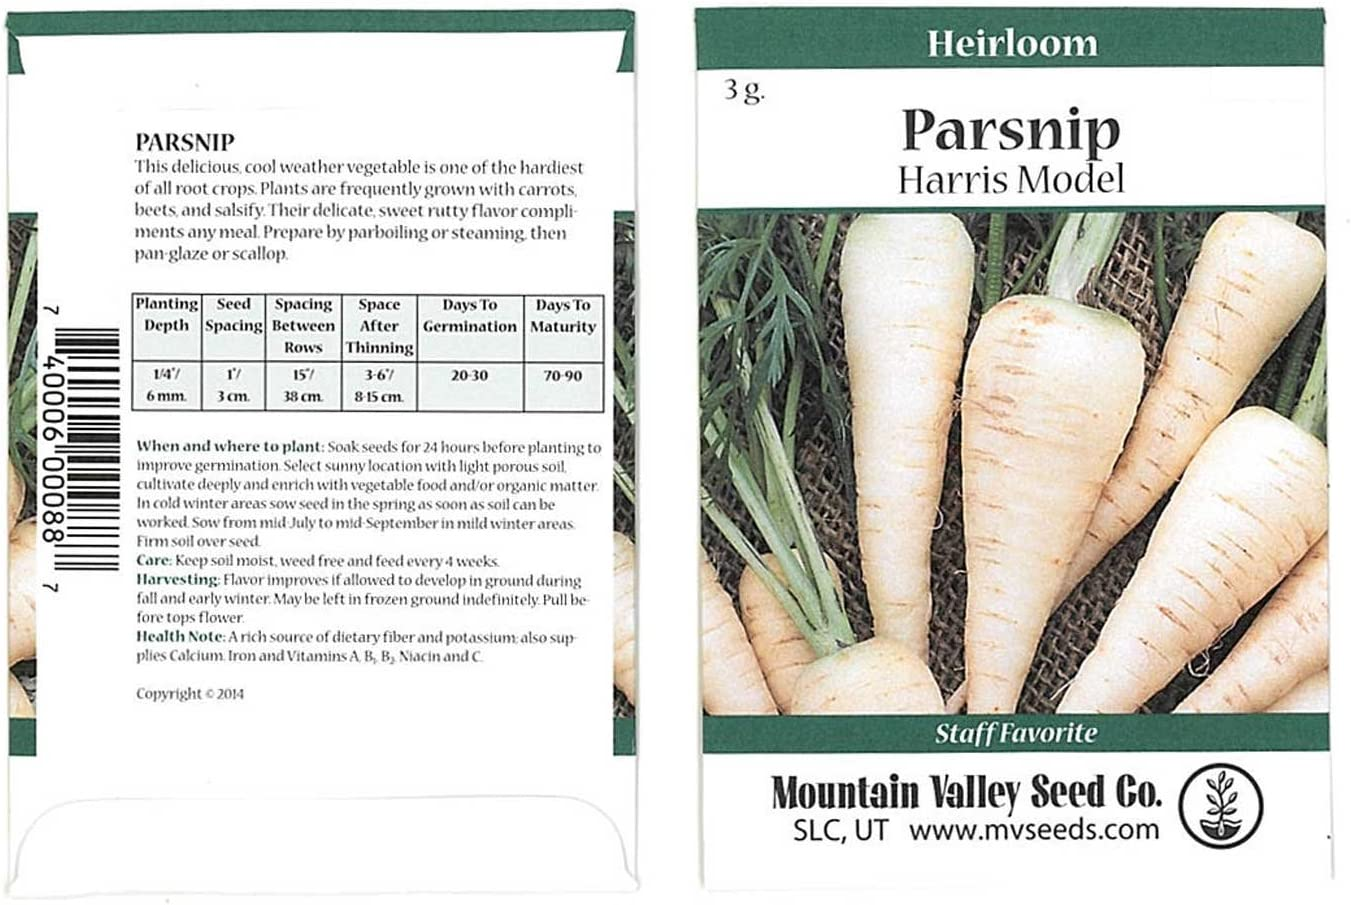 Harris Model Parsnip Garden Seeds - 3 Gram Packet ~500 Seeds - Non-GMO, Heirloom Vegetable Gardening Seeds - AAS Winner